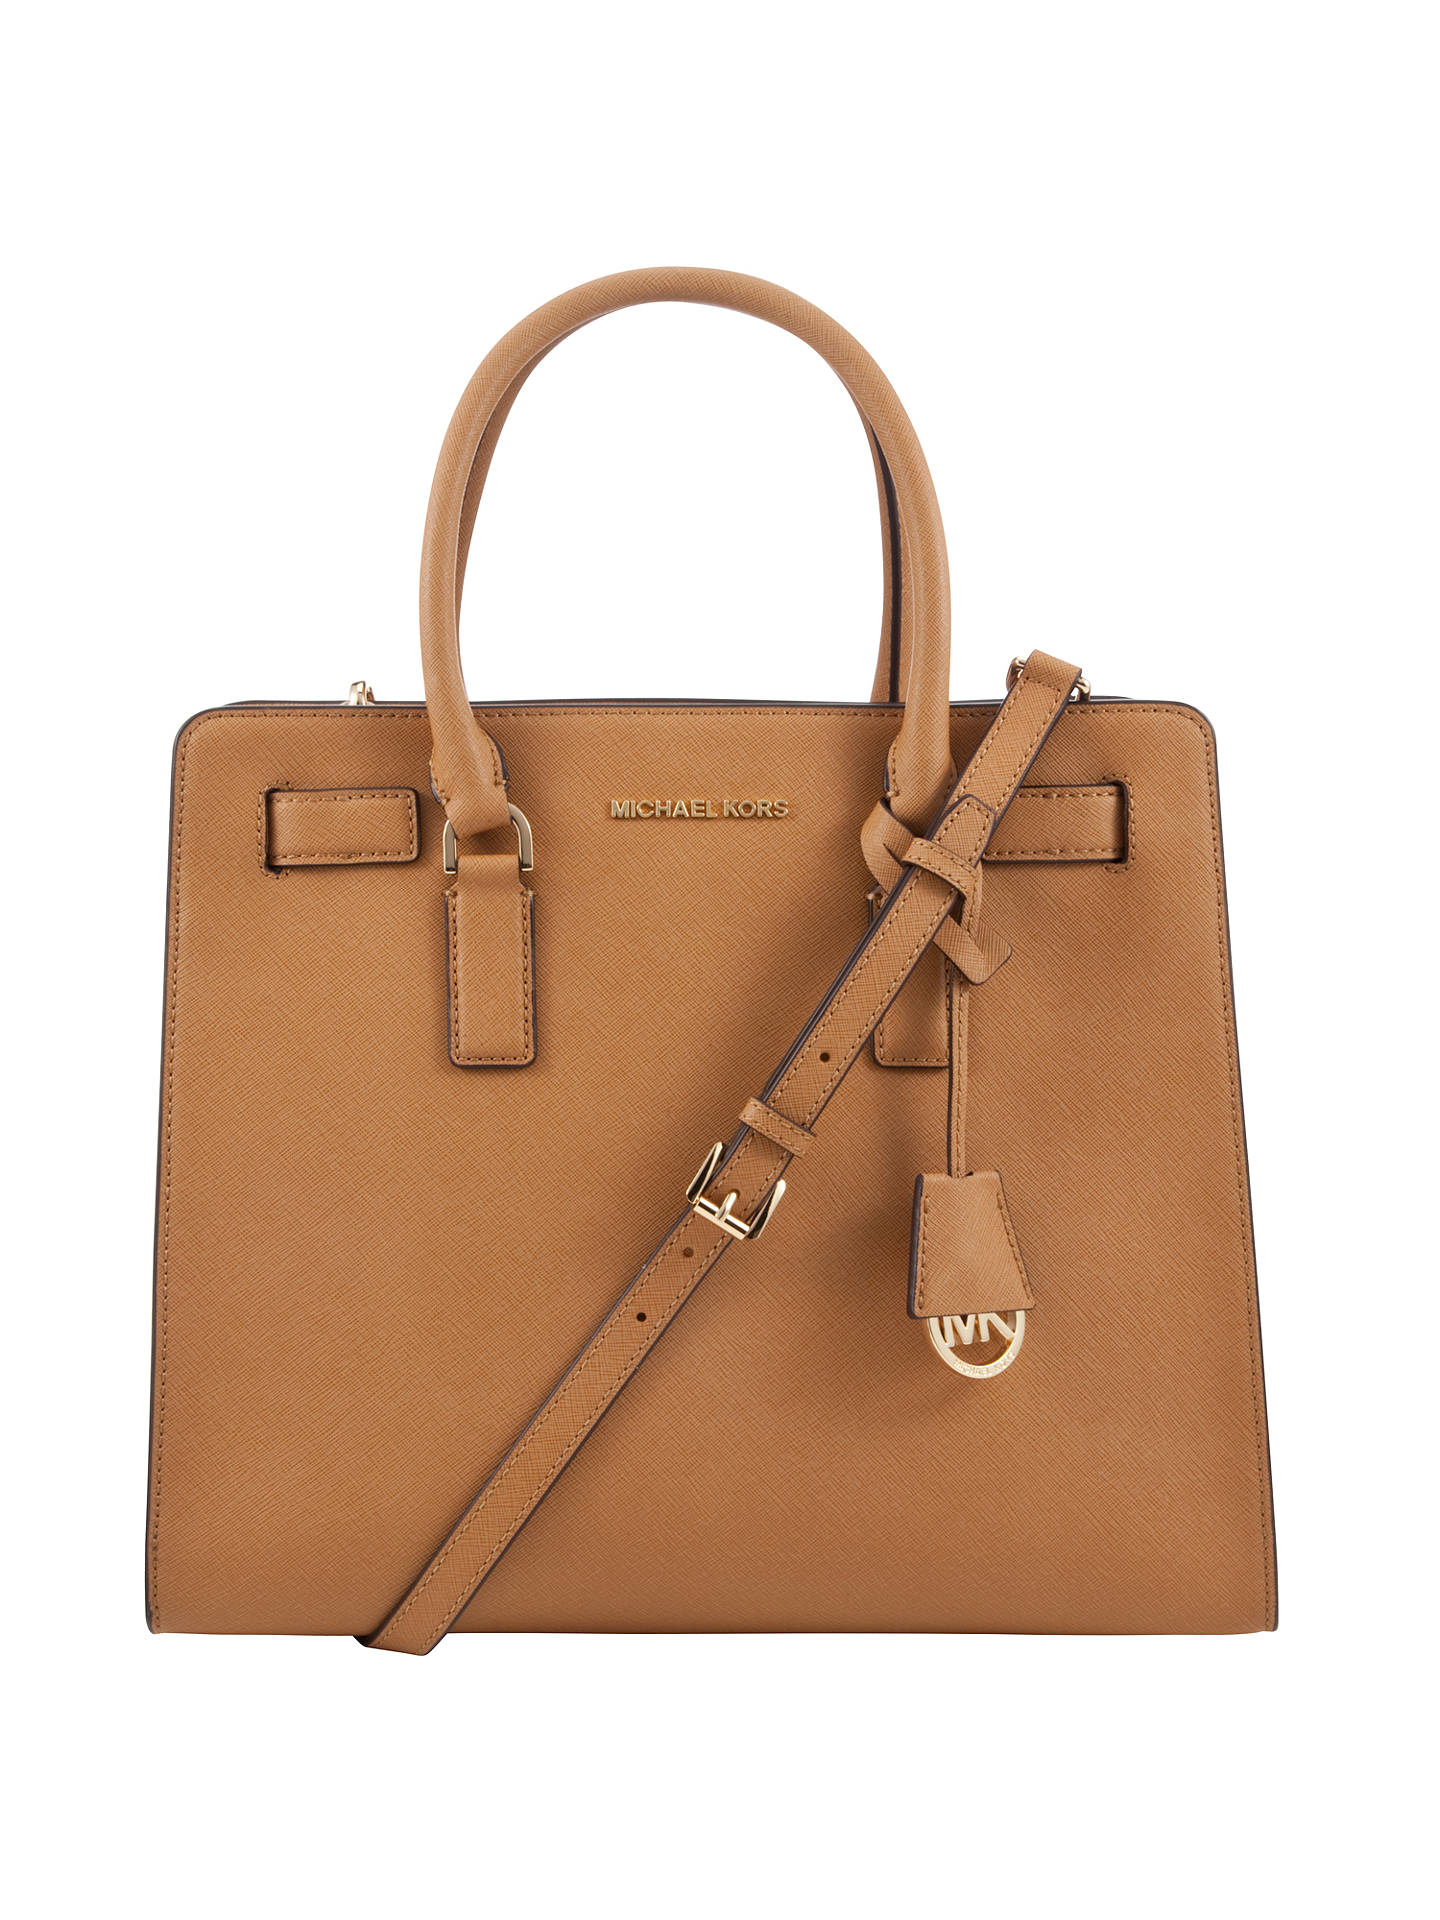 7f9f9bd66698 Buy MICHAEL Michael Kors Dillon Large Saffiano Leather Tote Bag, Peanut  Online at johnlewis.